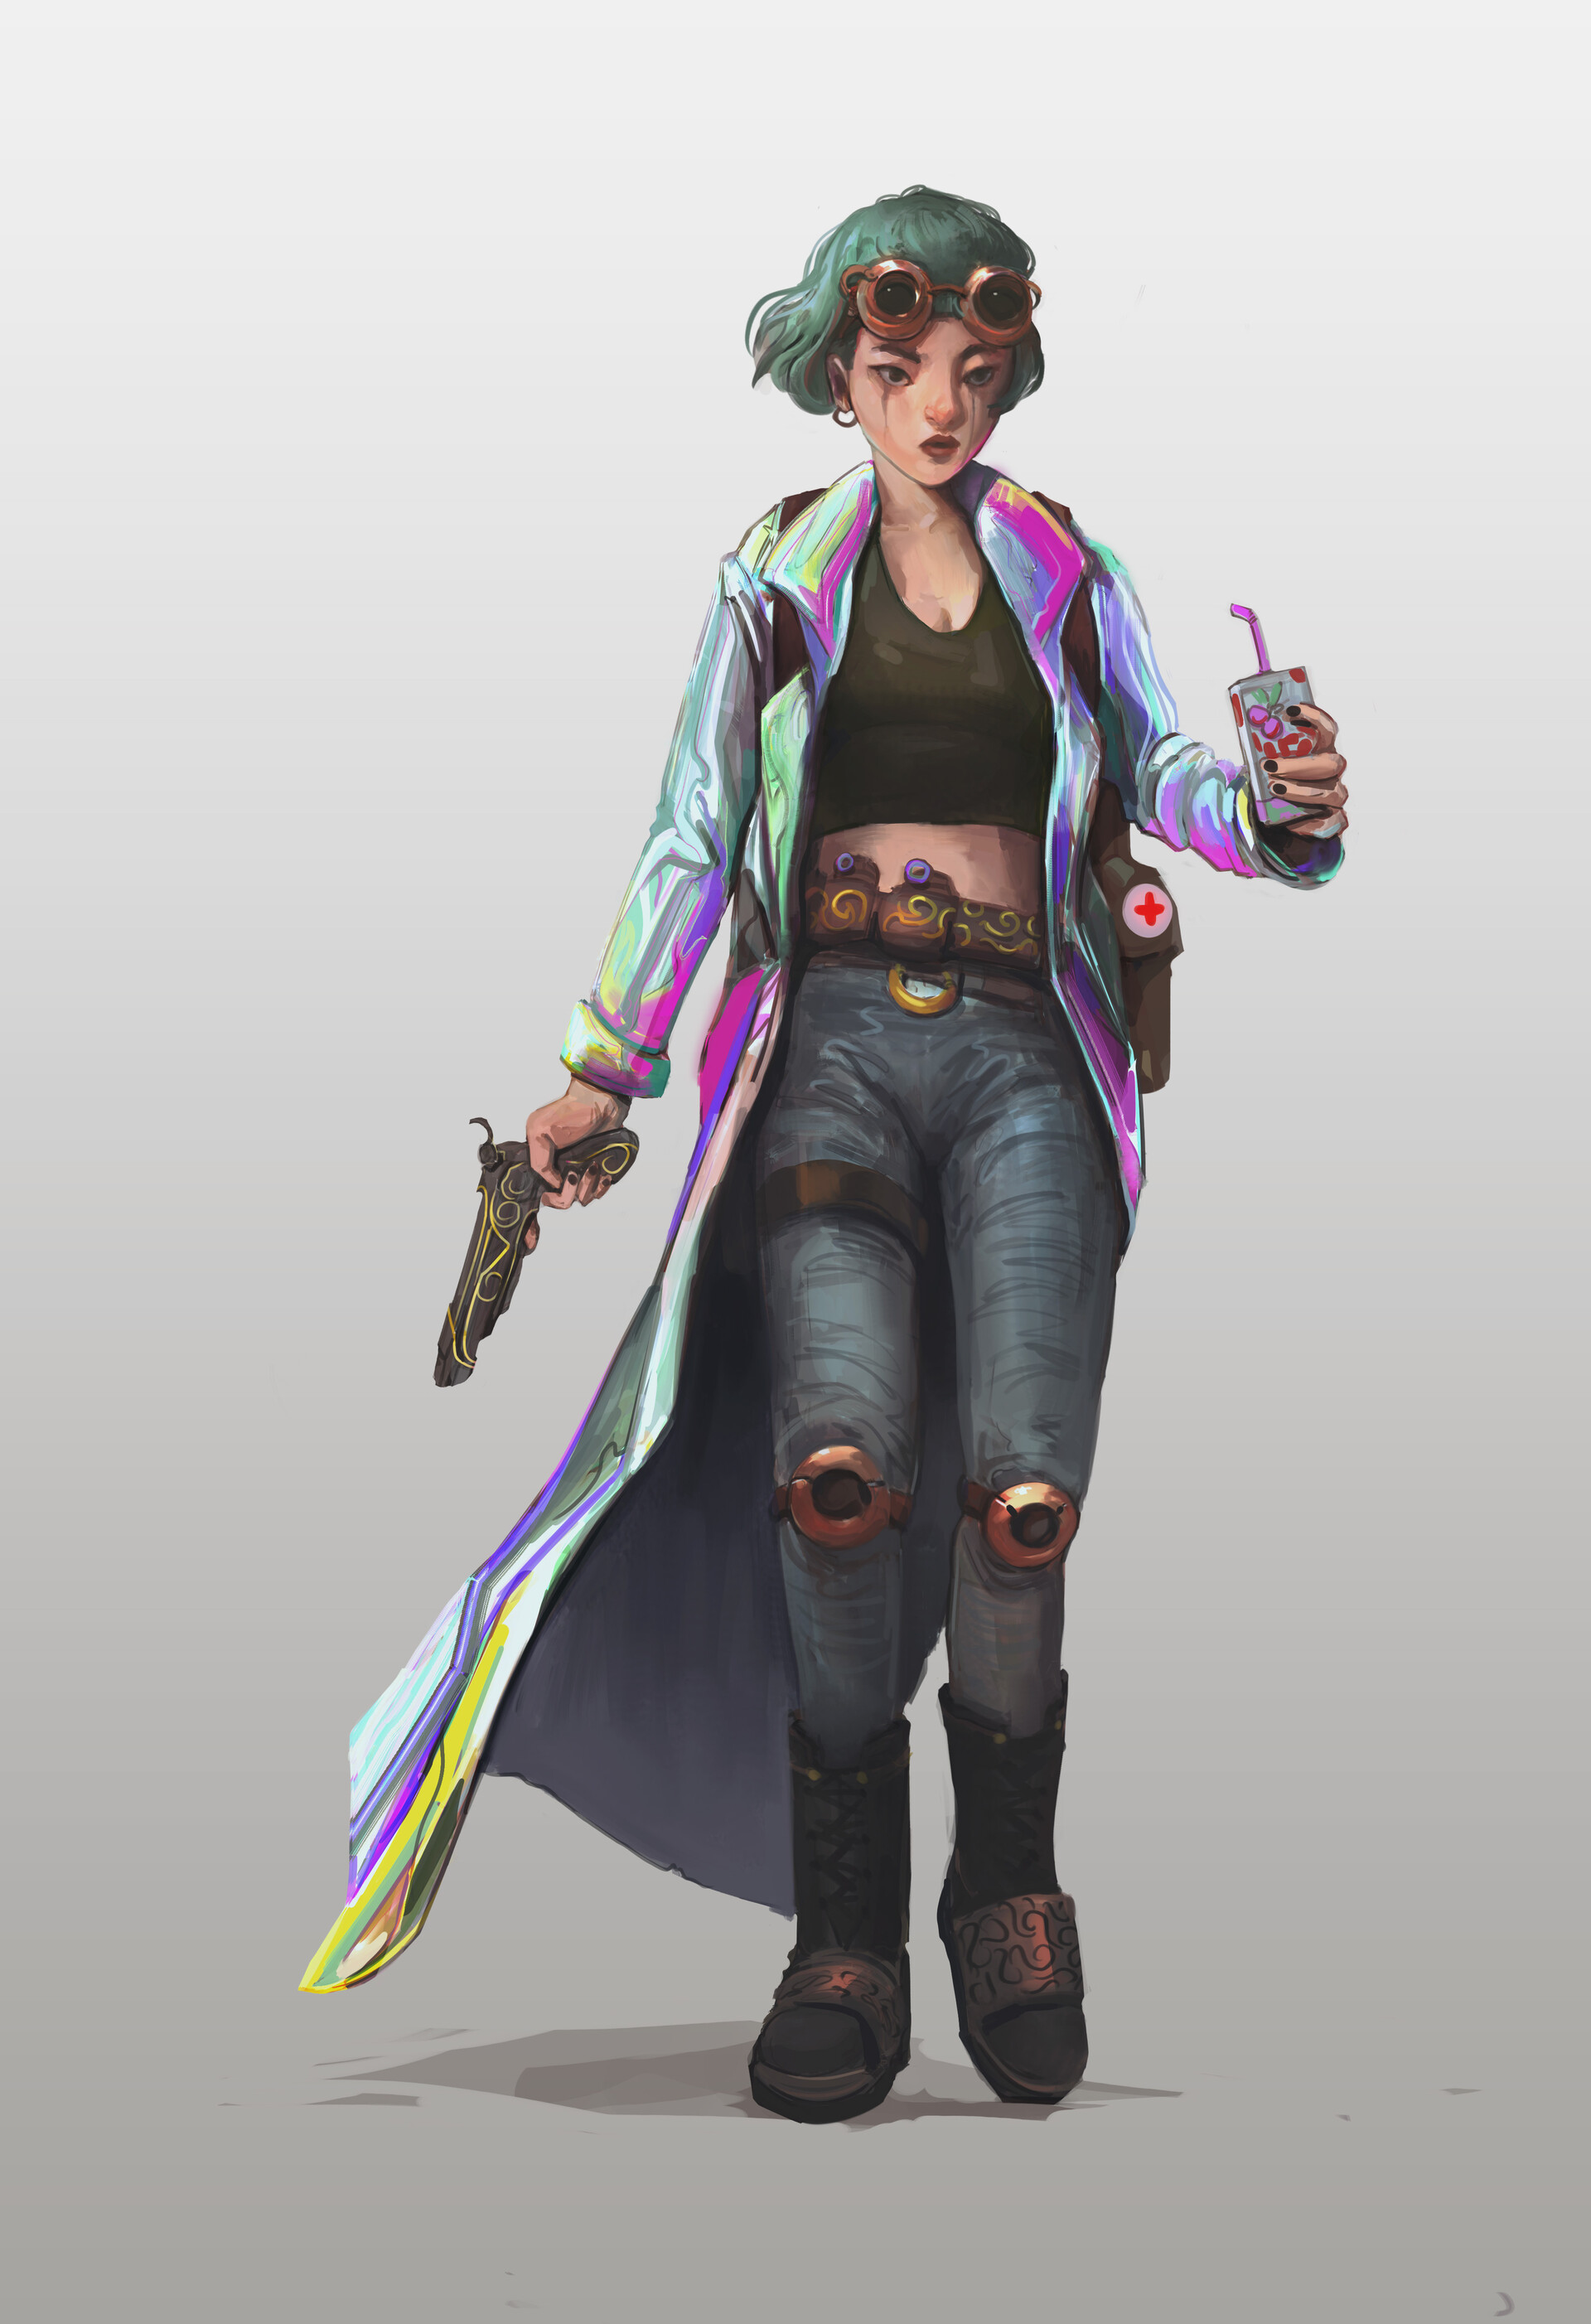 Character final version